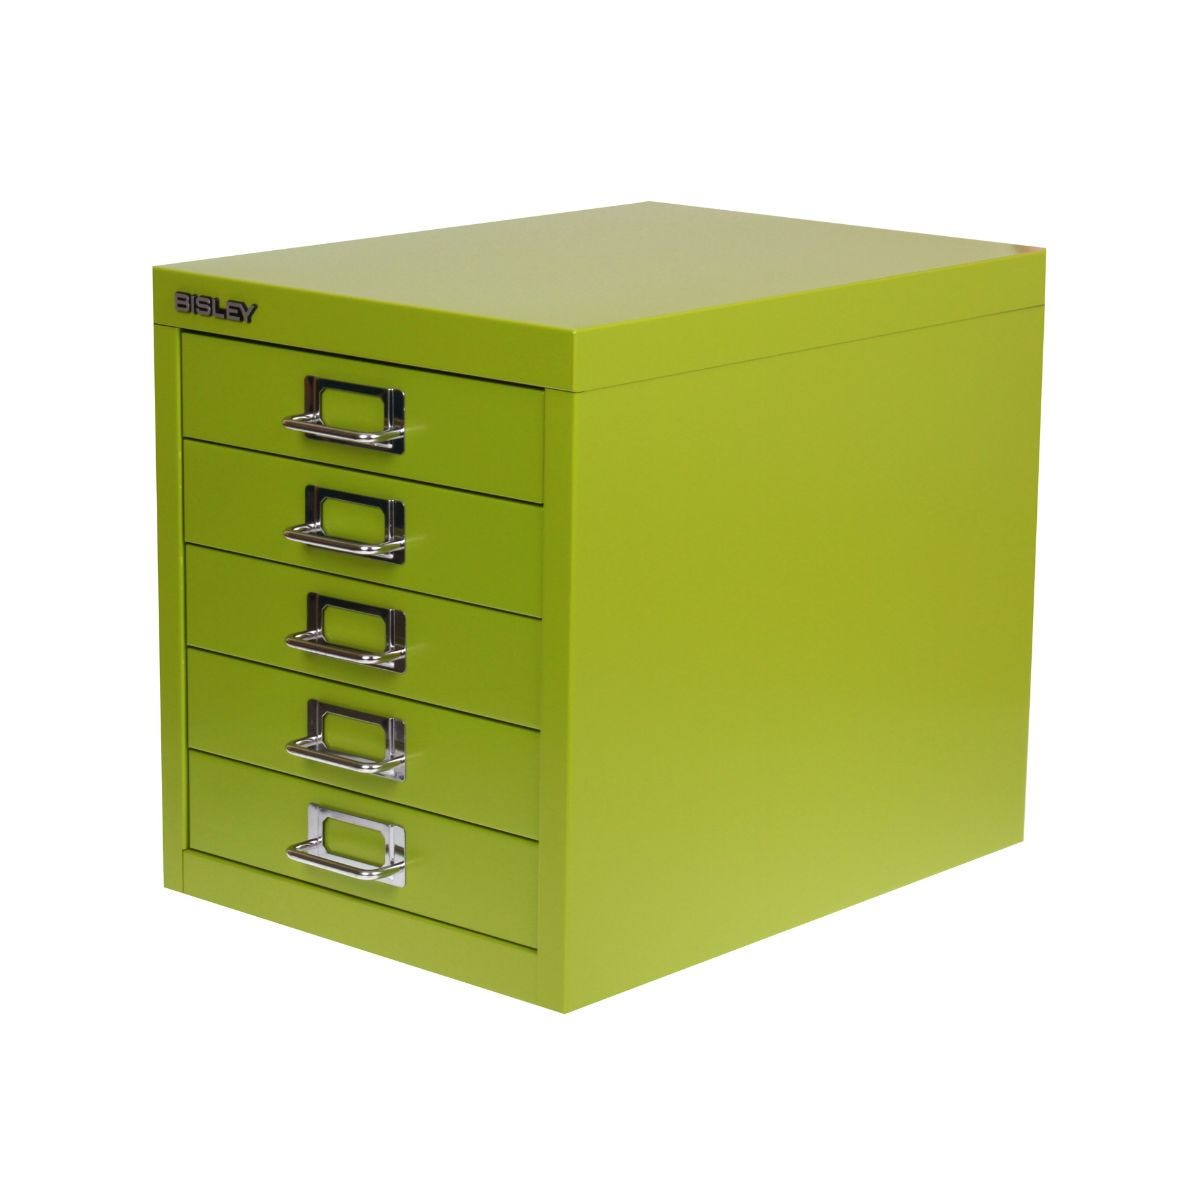 Perfect Green Filing Cabinets Storage & Shelving Furniture & Storage - Ryman ML29